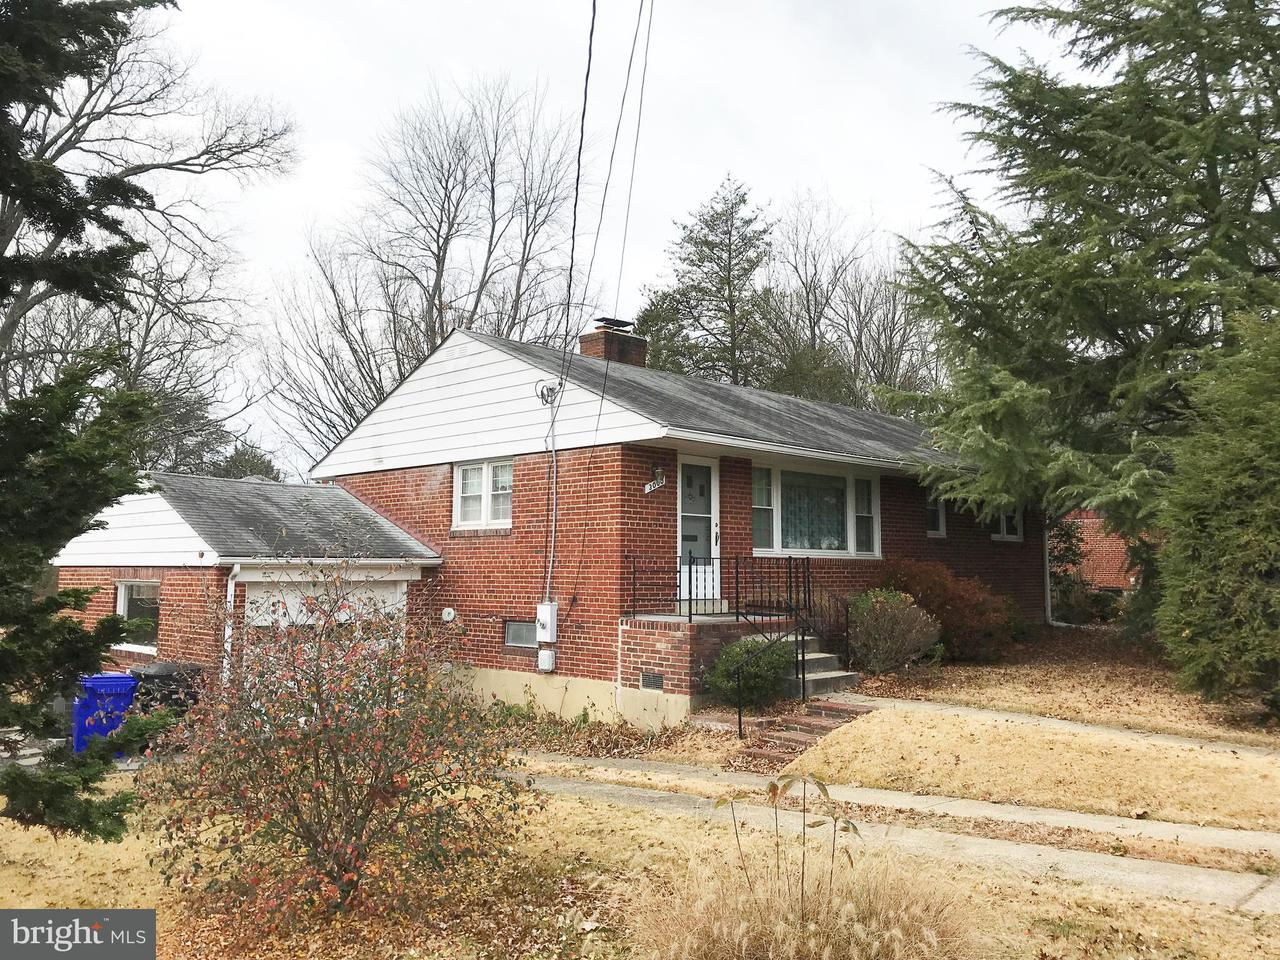 Single Family Home for Sale at 3000 UNDERWOOD ST N 3000 UNDERWOOD ST N Arlington, Virginia 22213 United States